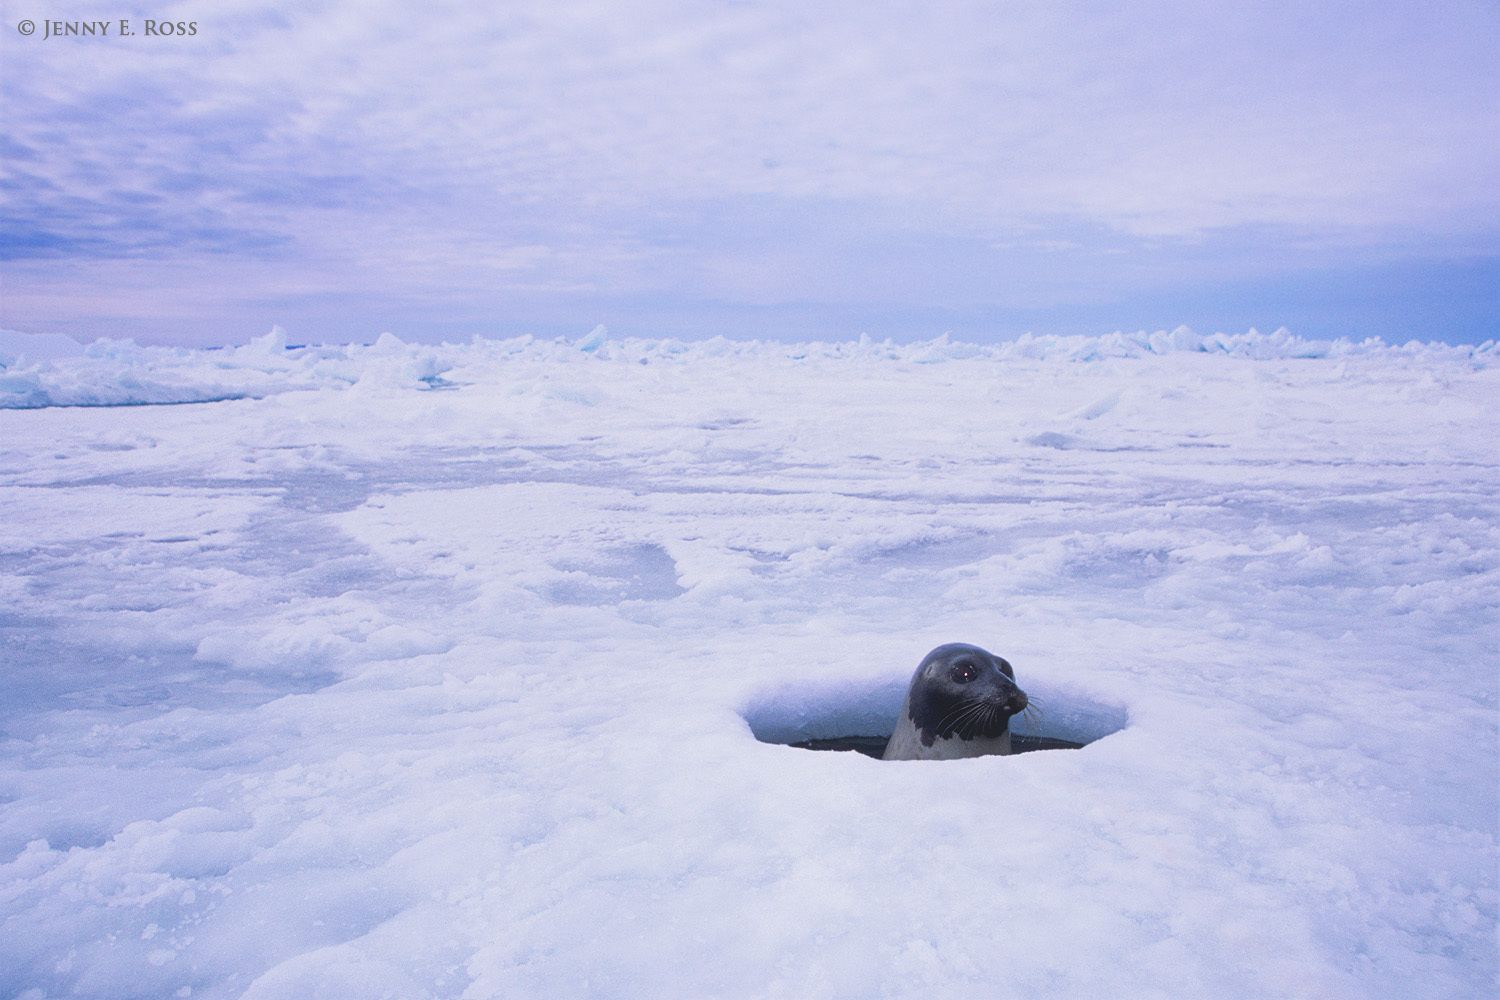 Harp seal surfacing in a breathing hole, Gulf of St. Lawrence, Nova Scotia, Canada.